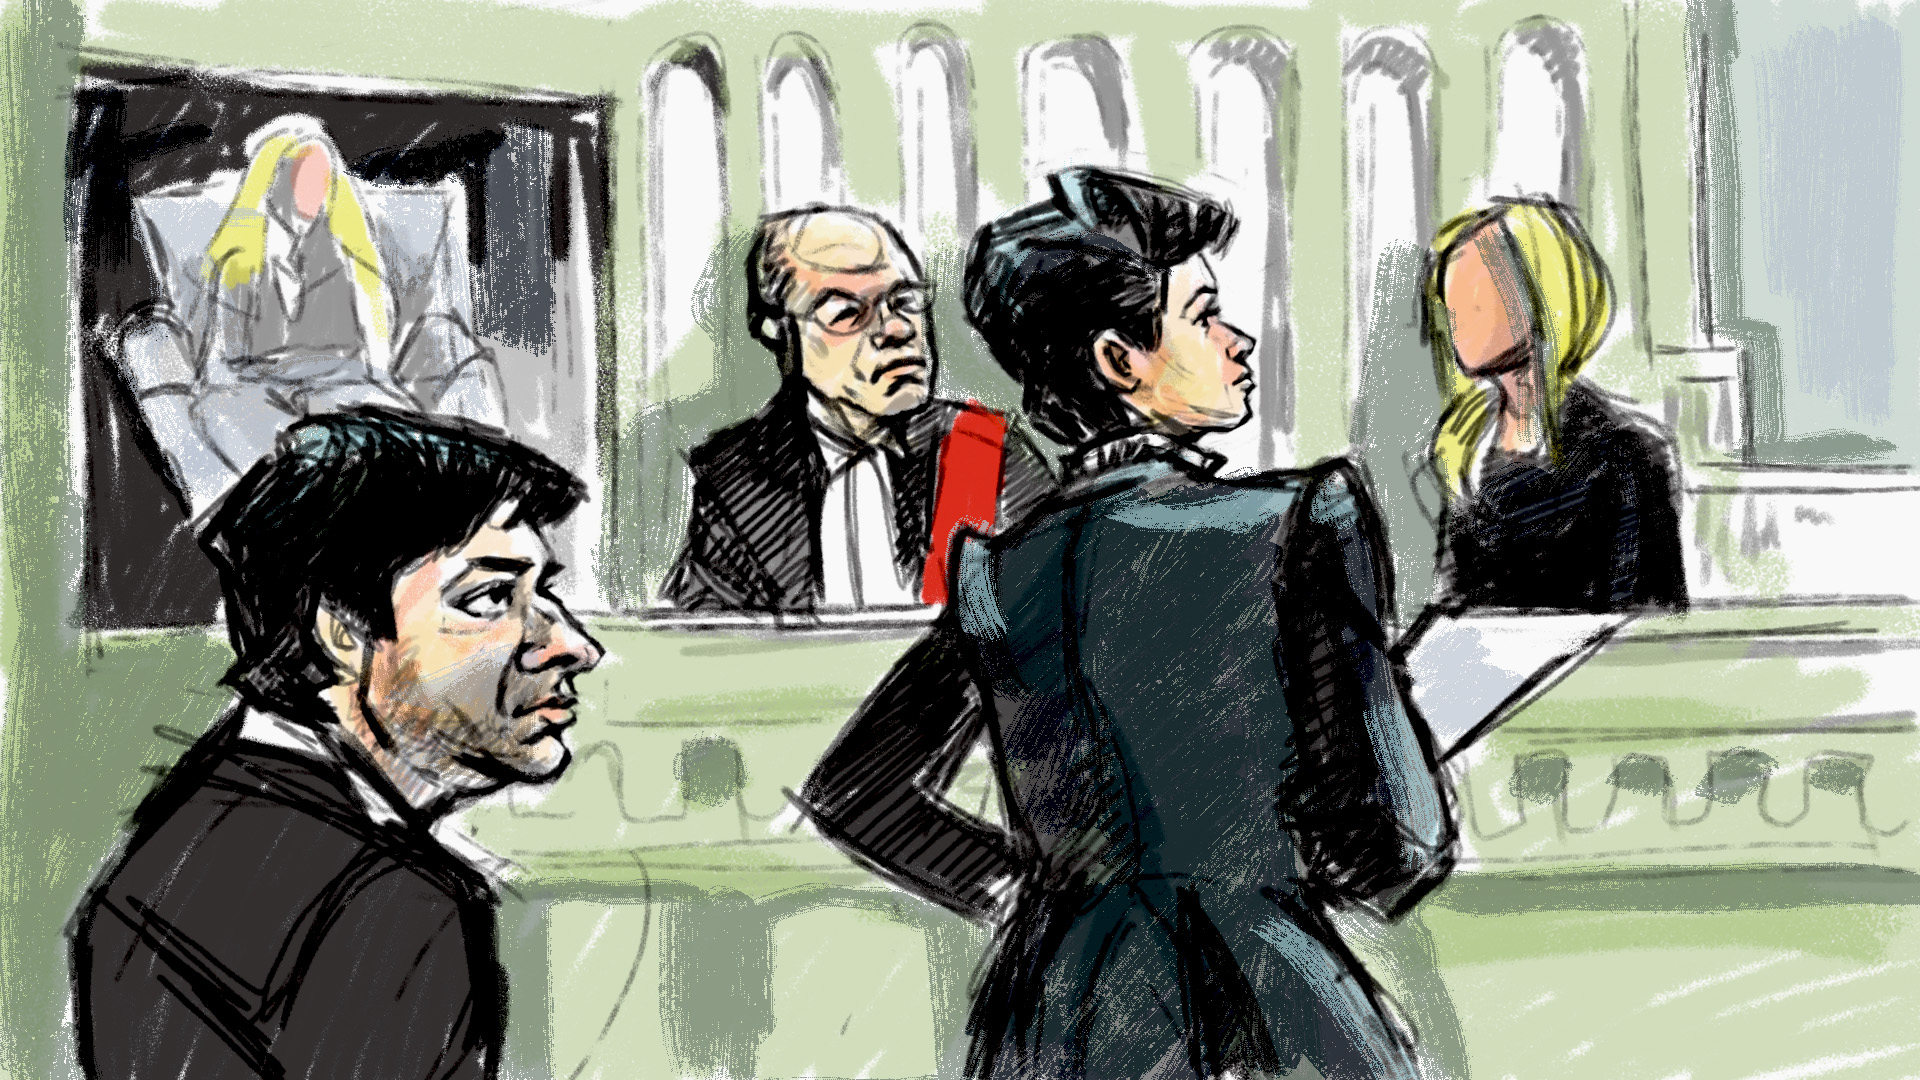 jian ghomeshi s sexual assault trial resumes today news jian ghomeshi s sexual assault trial resumes today